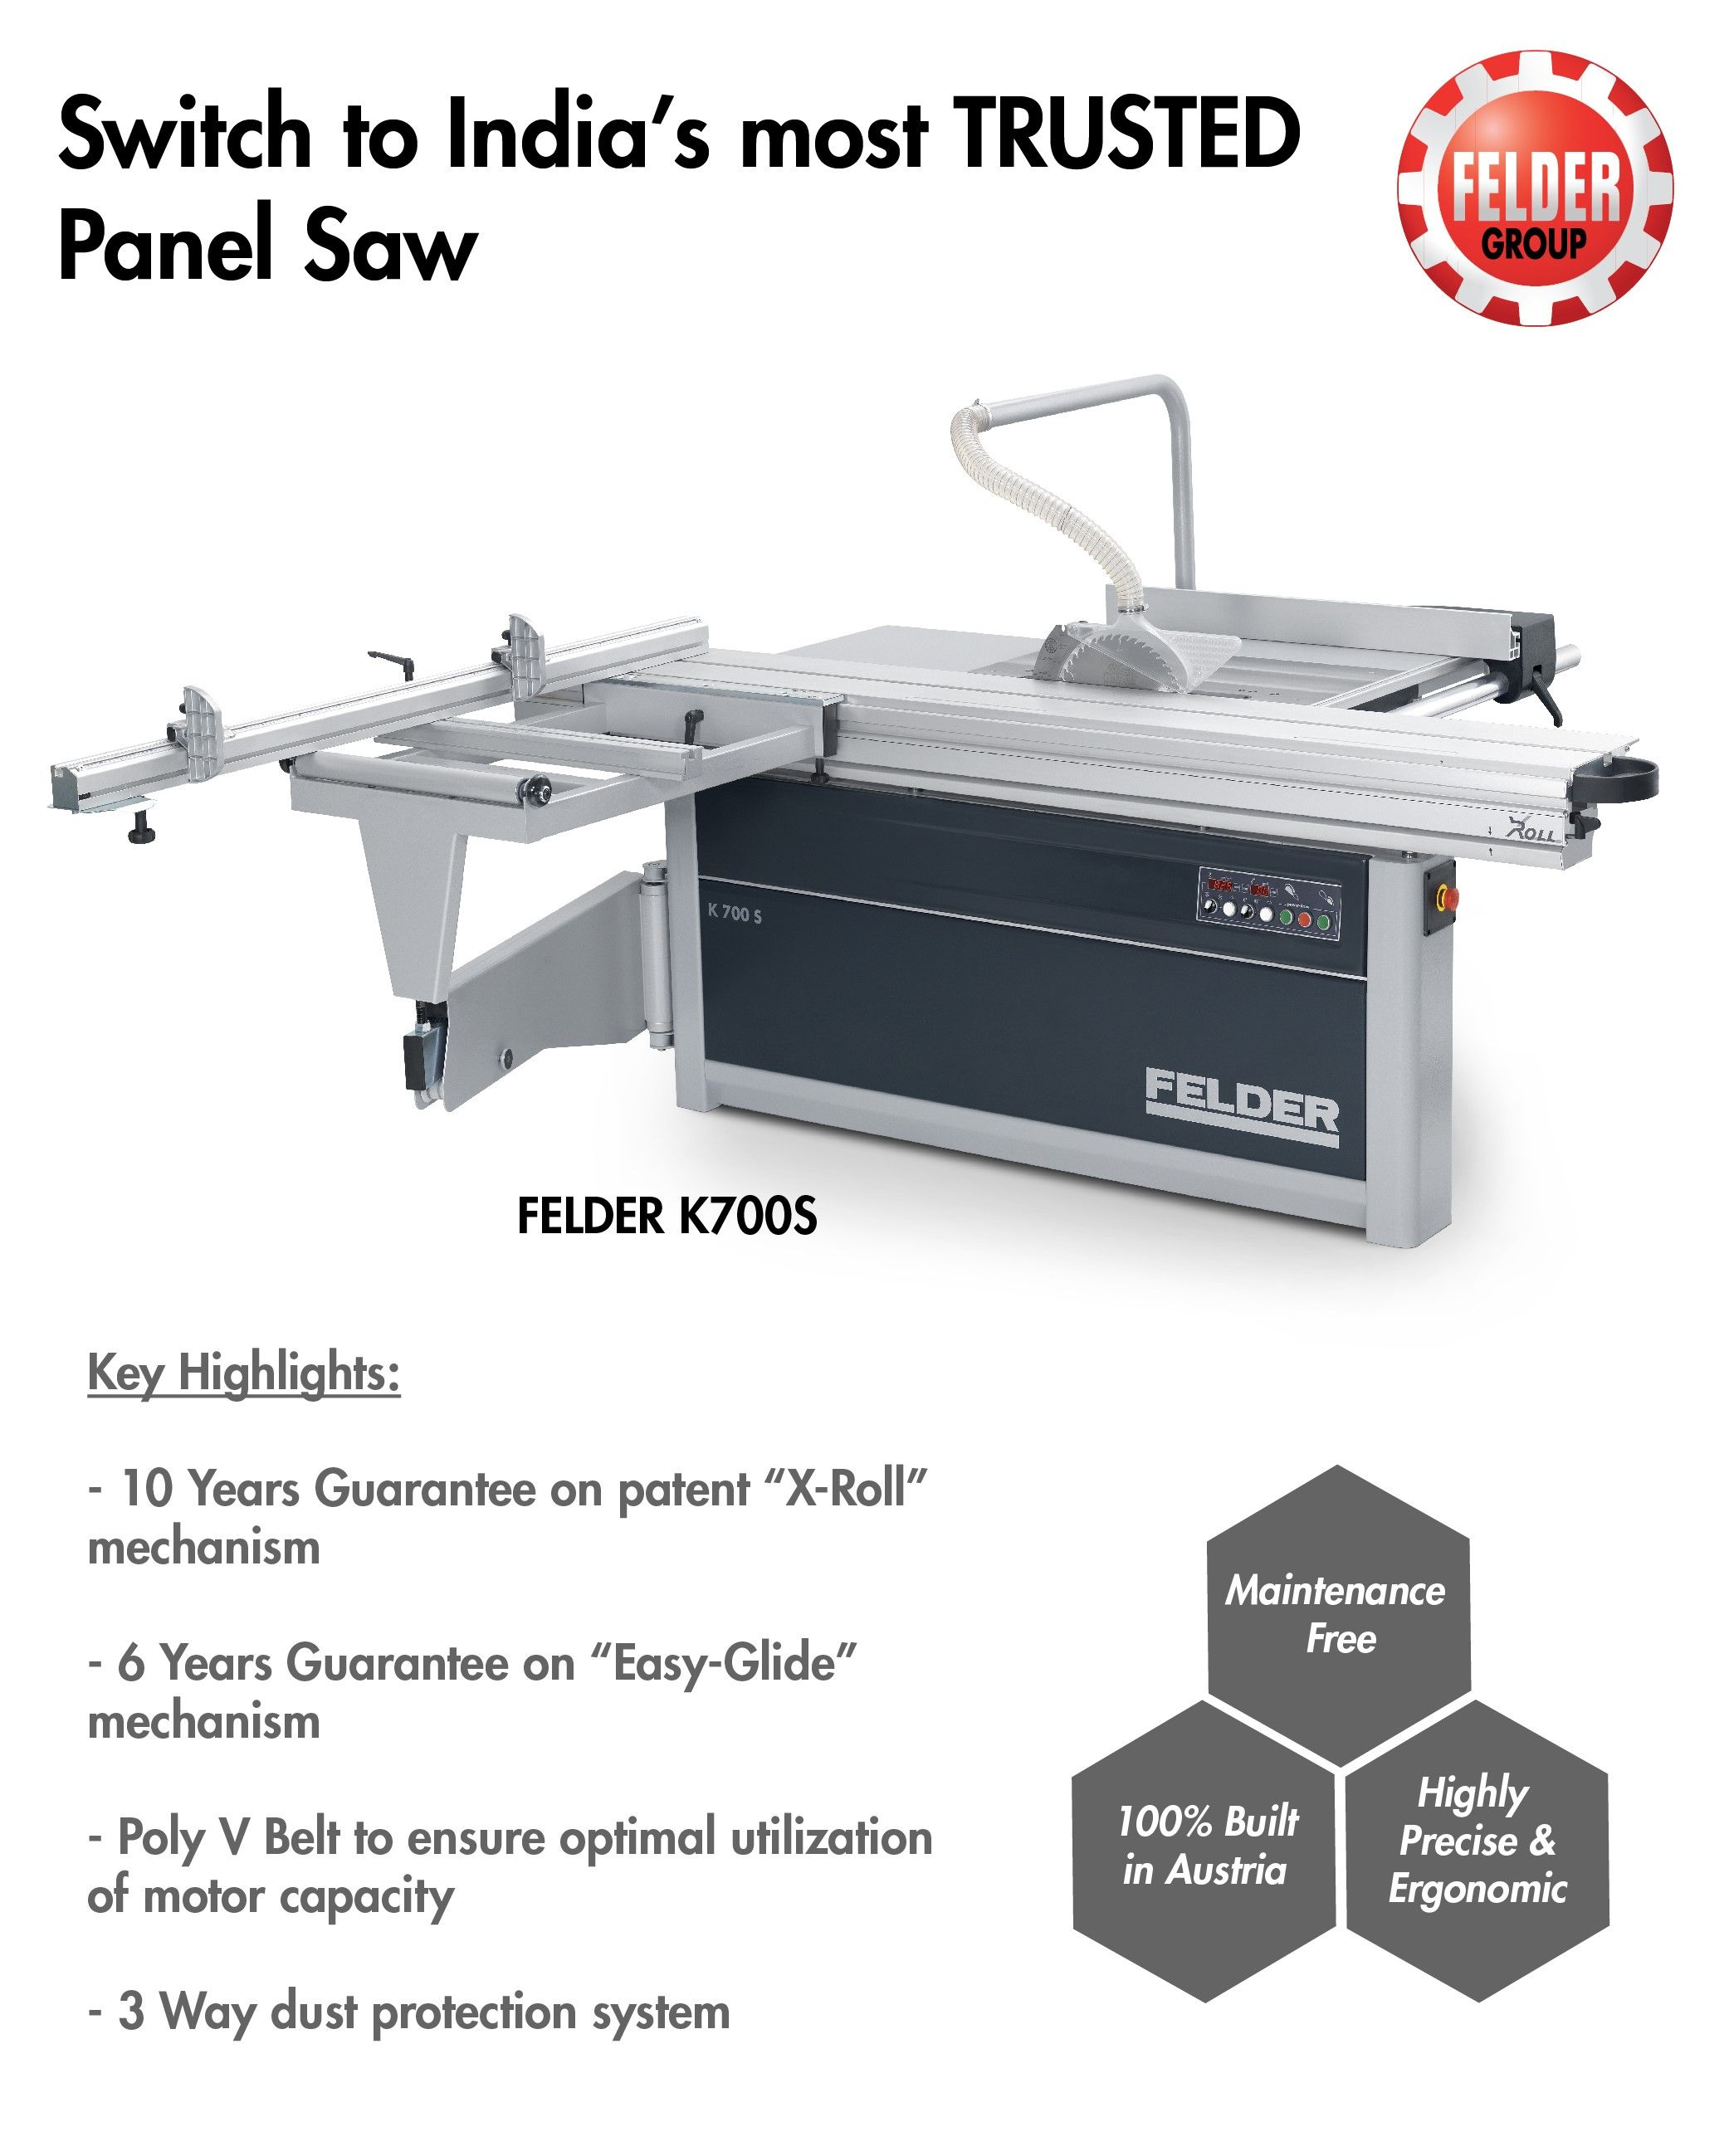 Pin by Felder Group India on Panel Saw - Wood Cutting Machines in